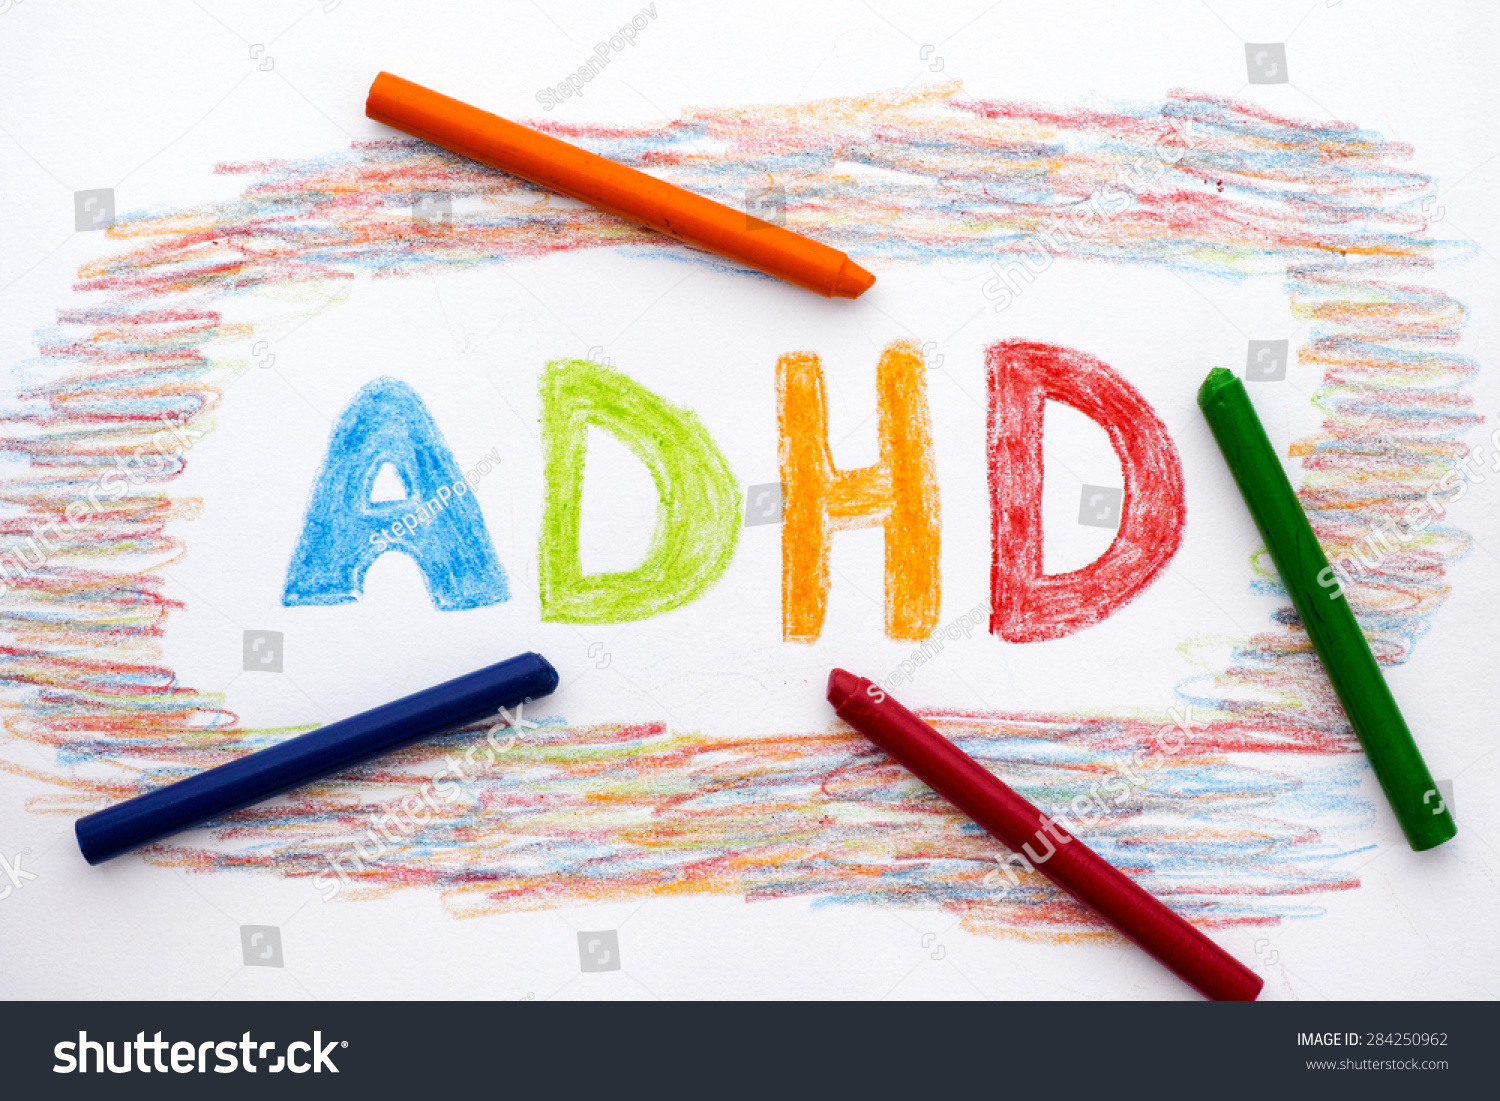 Attention Deficit Hyperactivity Disorder (ADHD) Essay